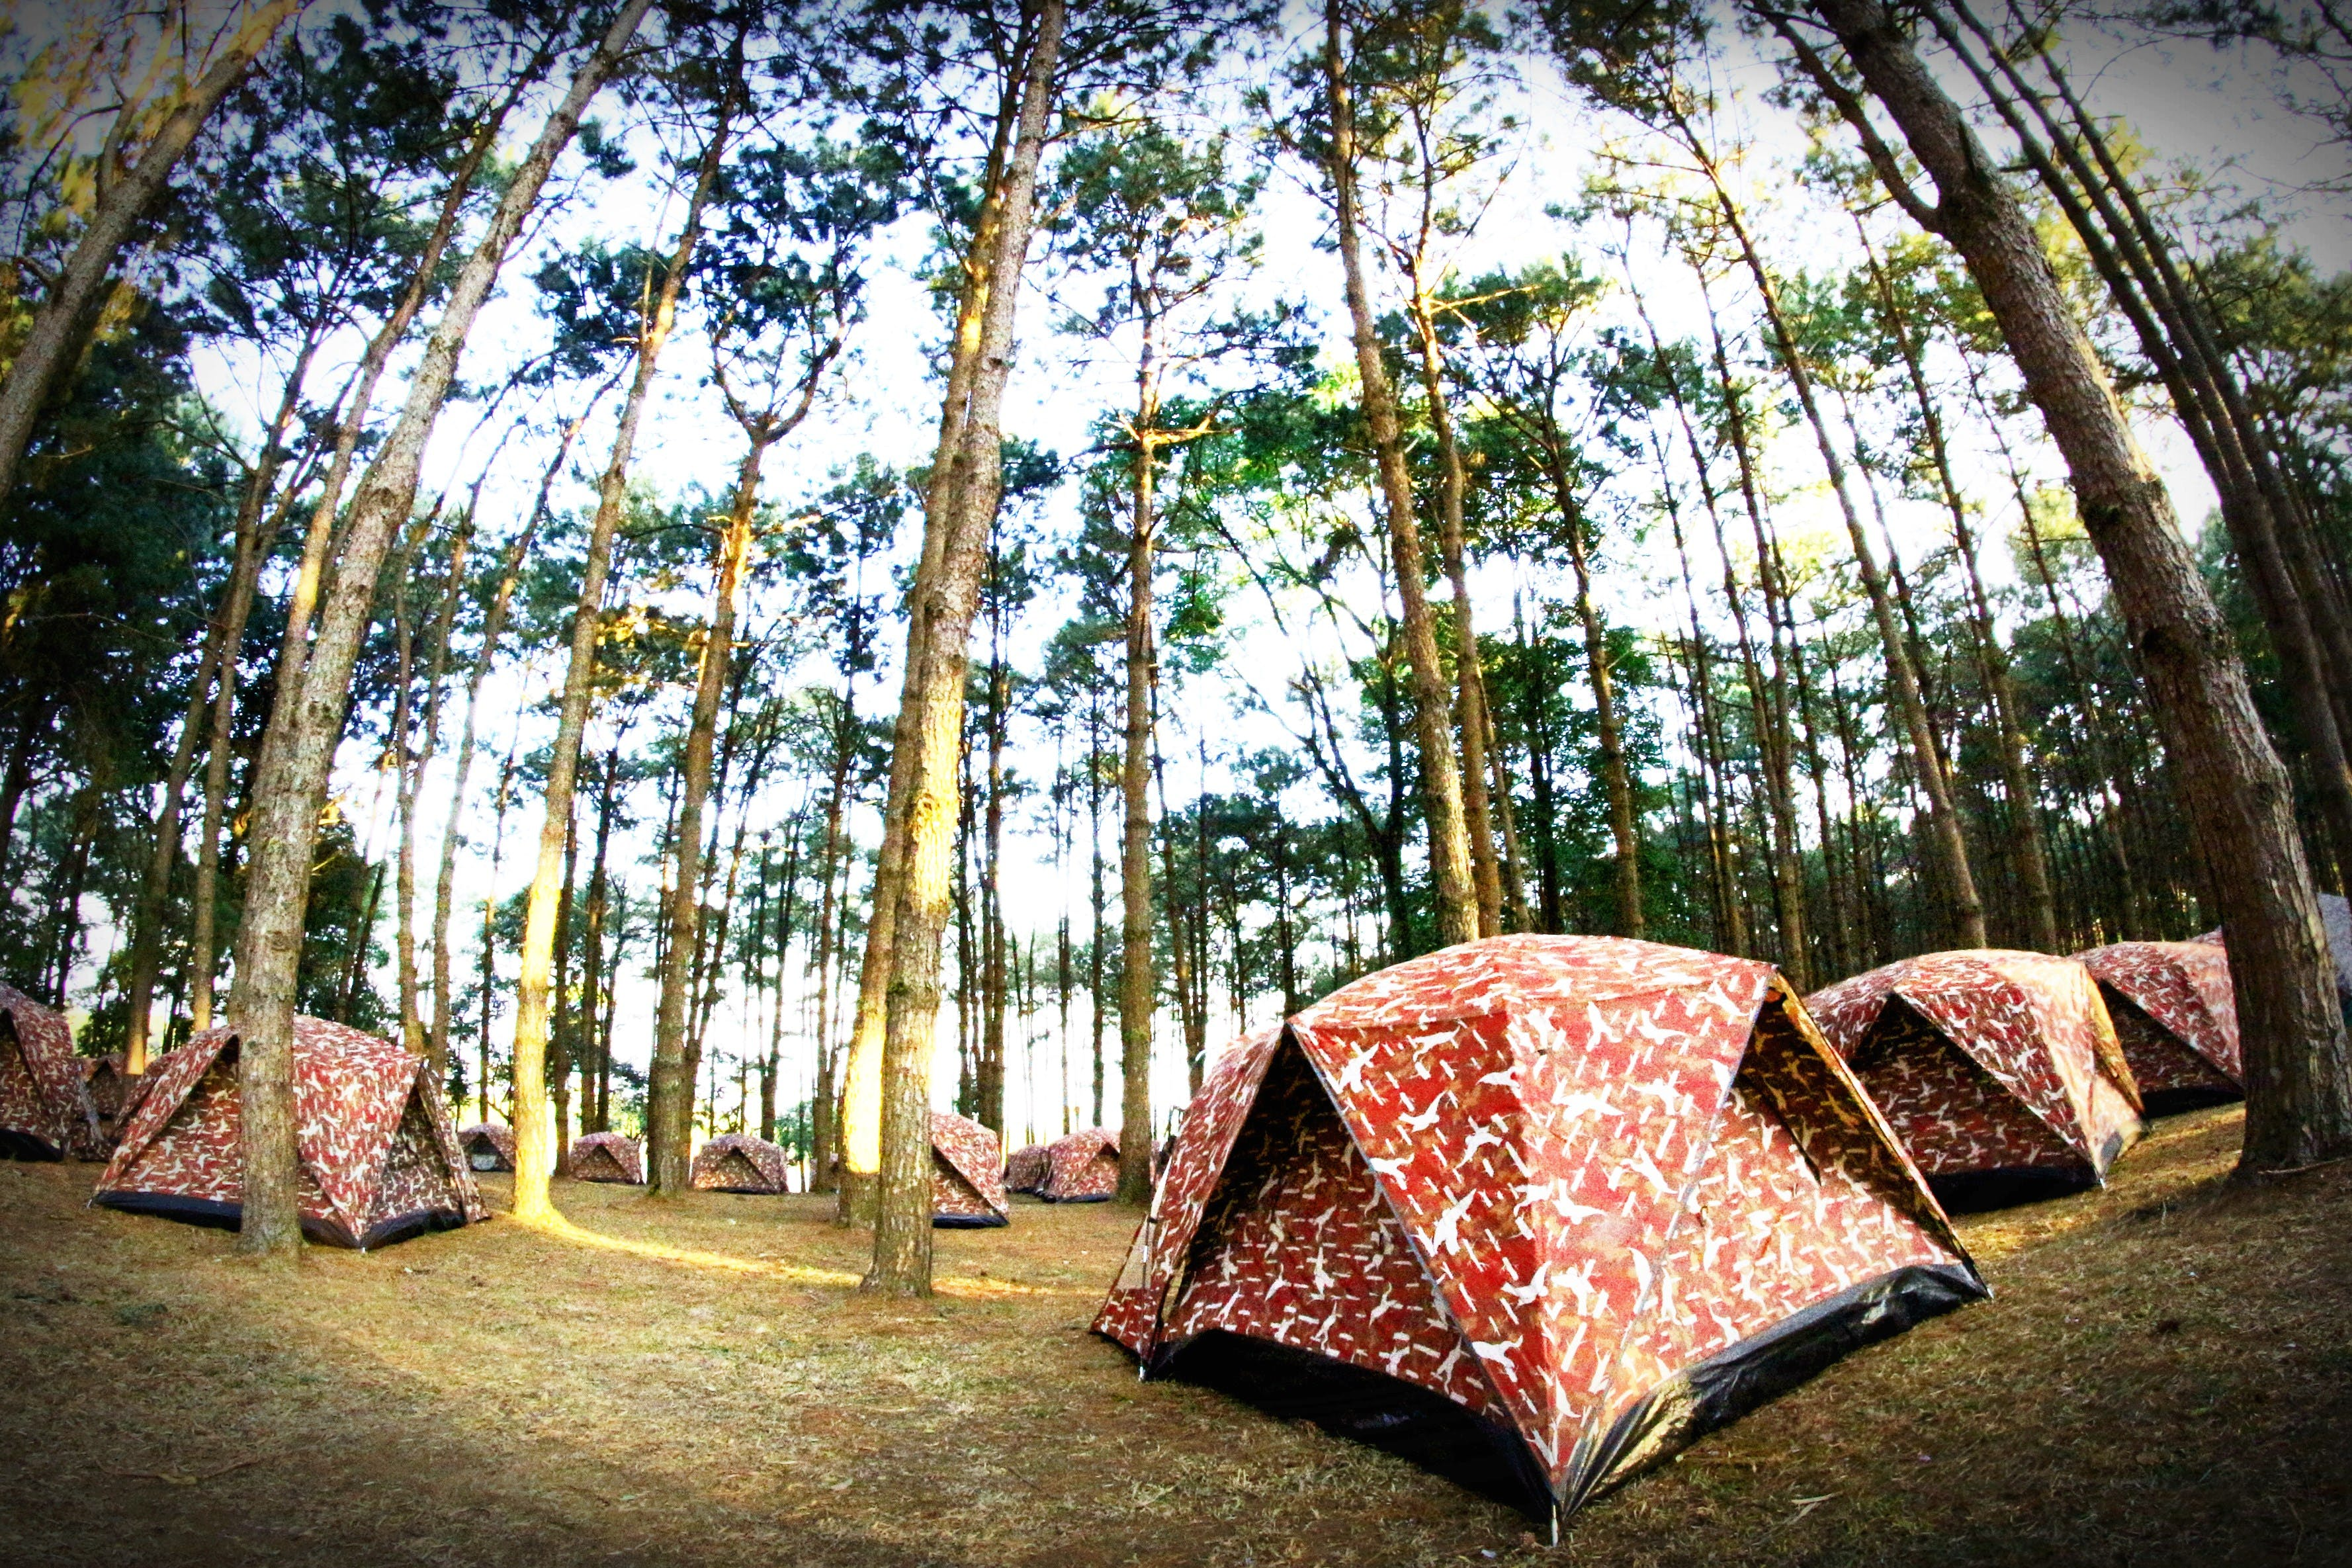 Fish-eye Lens Photography of Red-and-white Tents in the Middle of Forest